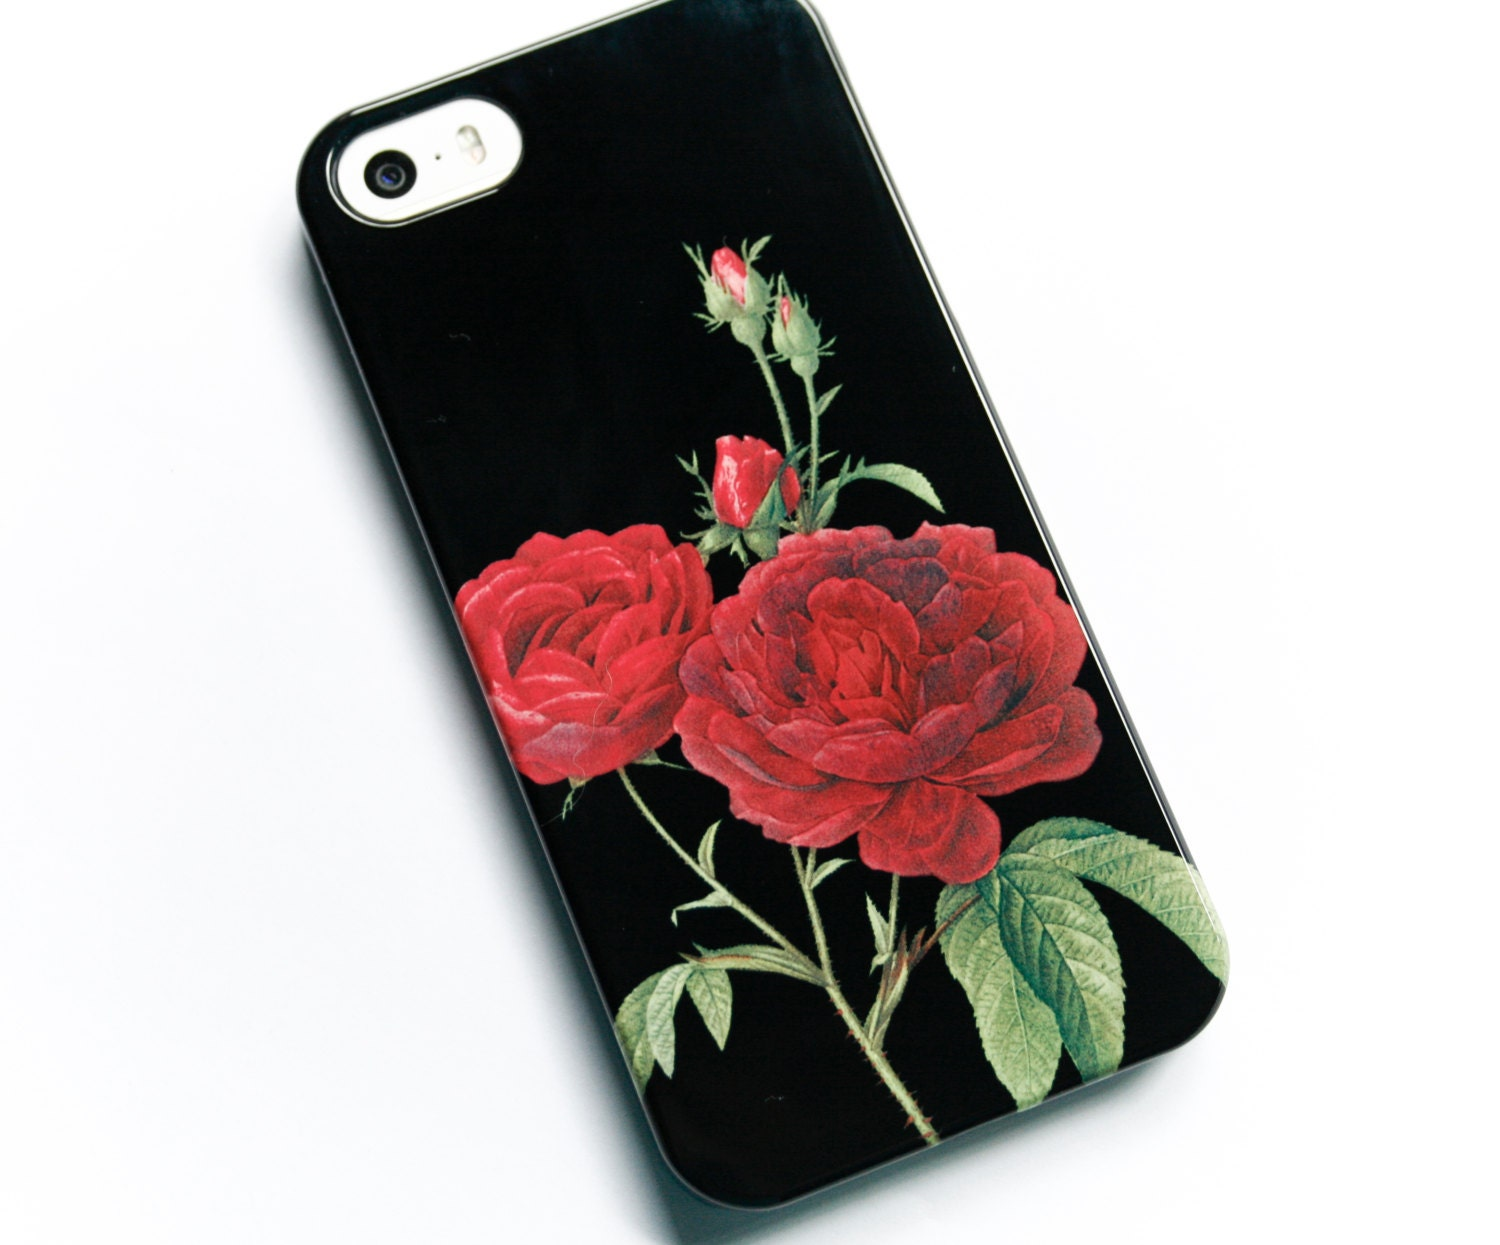 floral phone case iphone 6 case red rose iphone 5s case. Black Bedroom Furniture Sets. Home Design Ideas